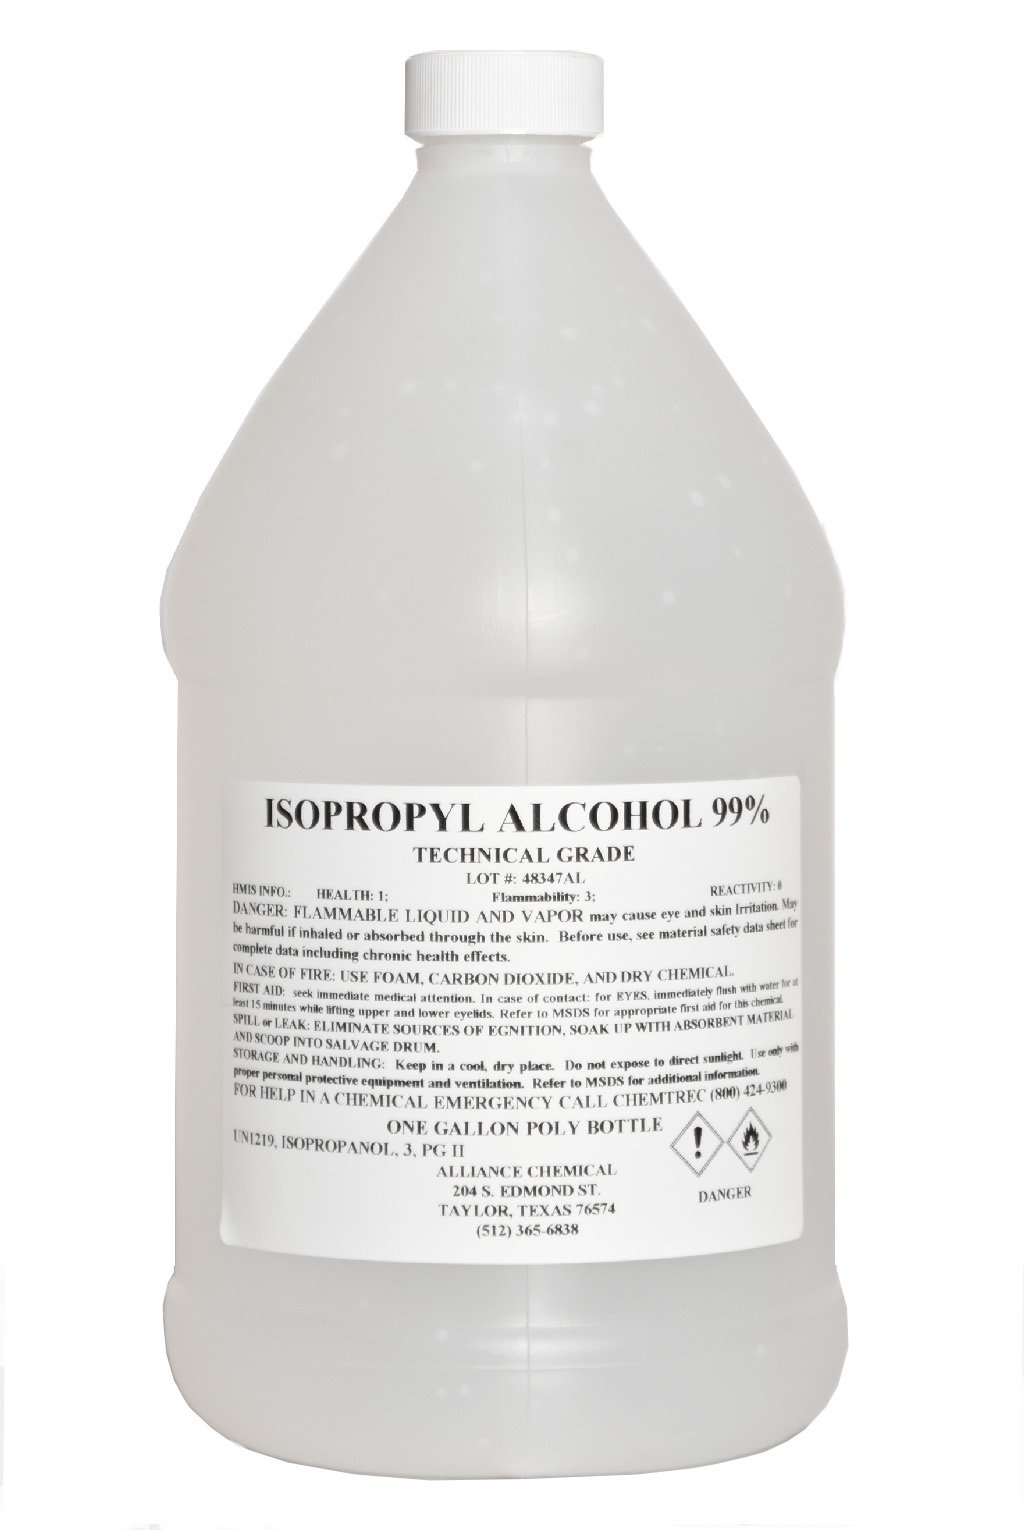 Isopropyl Alcohol 99% Technical Grade - 1 Gallon by Alliance Chemical